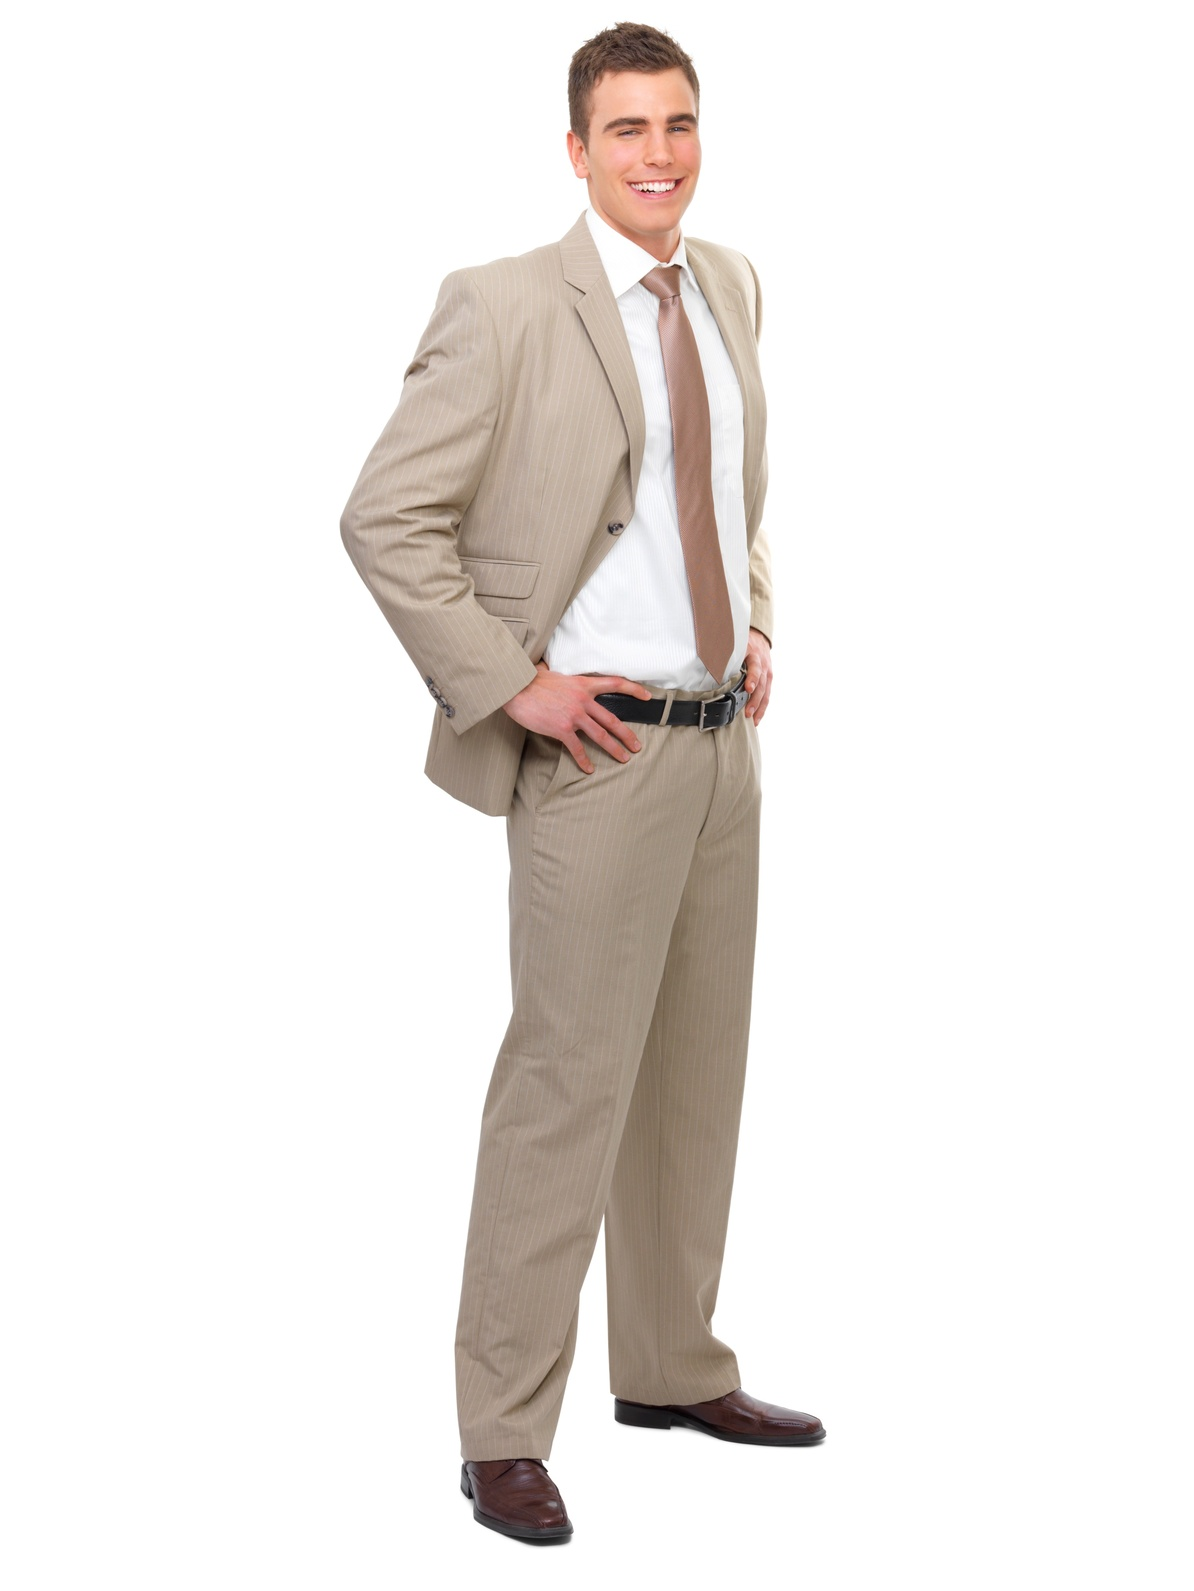 full-body-portrait-of-smiling-business-man-with-hands-on-by-yuri-arcurs.jpg